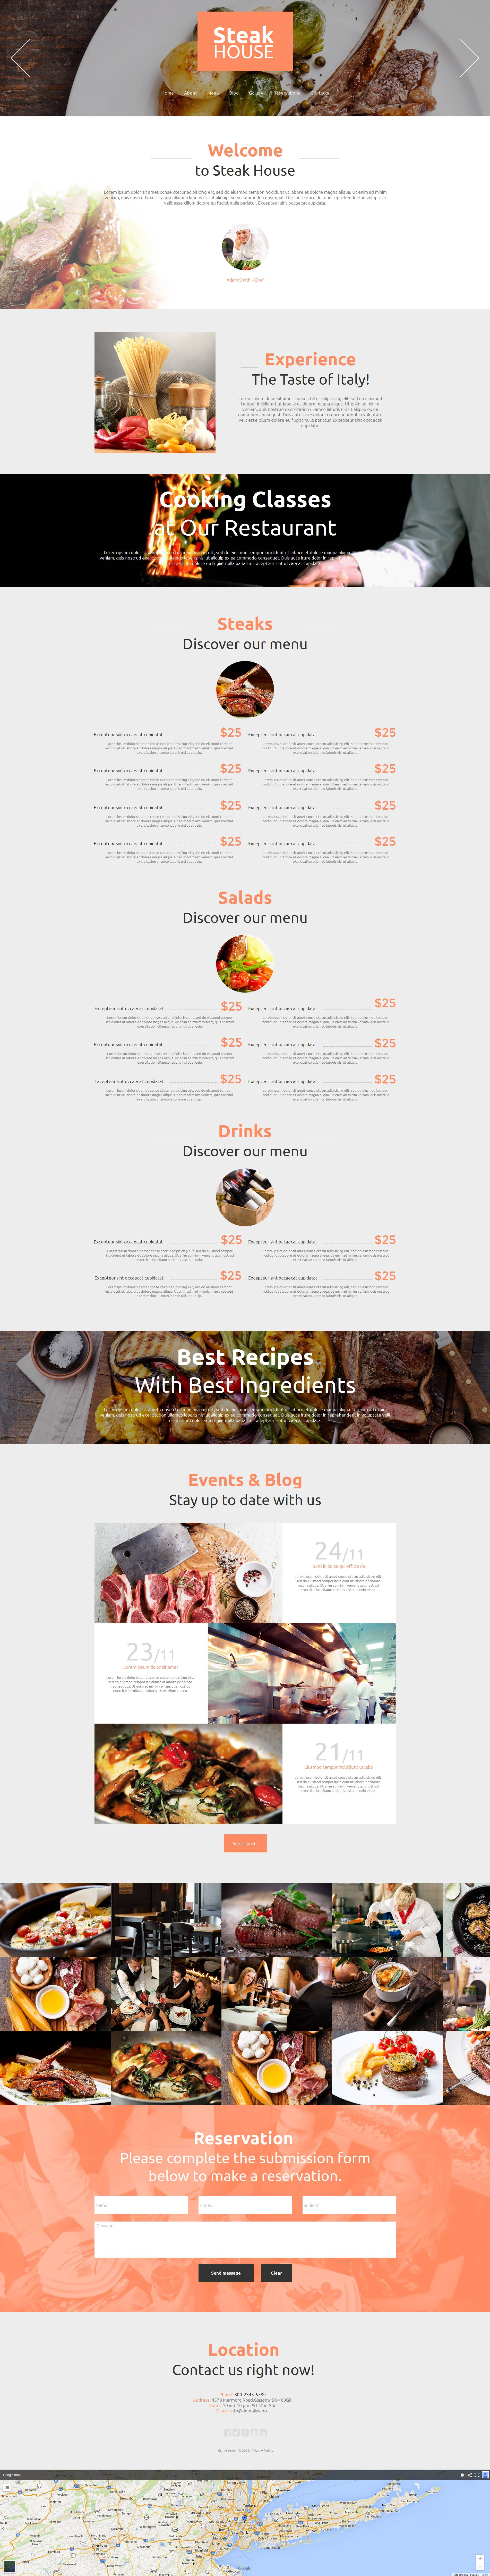 The Steakhouse Restaurant Moto CMS HTML Design 53234, one of the best Moto CMS HTML templates of its kind (cafe and restaurant), also known as steakhouse restaurant Moto CMS HTML template, cafe Moto CMS HTML template, food Moto CMS HTML template, eat Moto CMS HTML template, steak Moto CMS HTML template, house Moto CMS HTML template, meat Moto CMS HTML template, tasty Moto CMS HTML template, cook Moto CMS HTML template, cooking Moto CMS HTML template, delicious and related with steakhouse restaurant, cafe, food, eat, steak, house, meat, tasty, cook, cooking, delicious, etc.